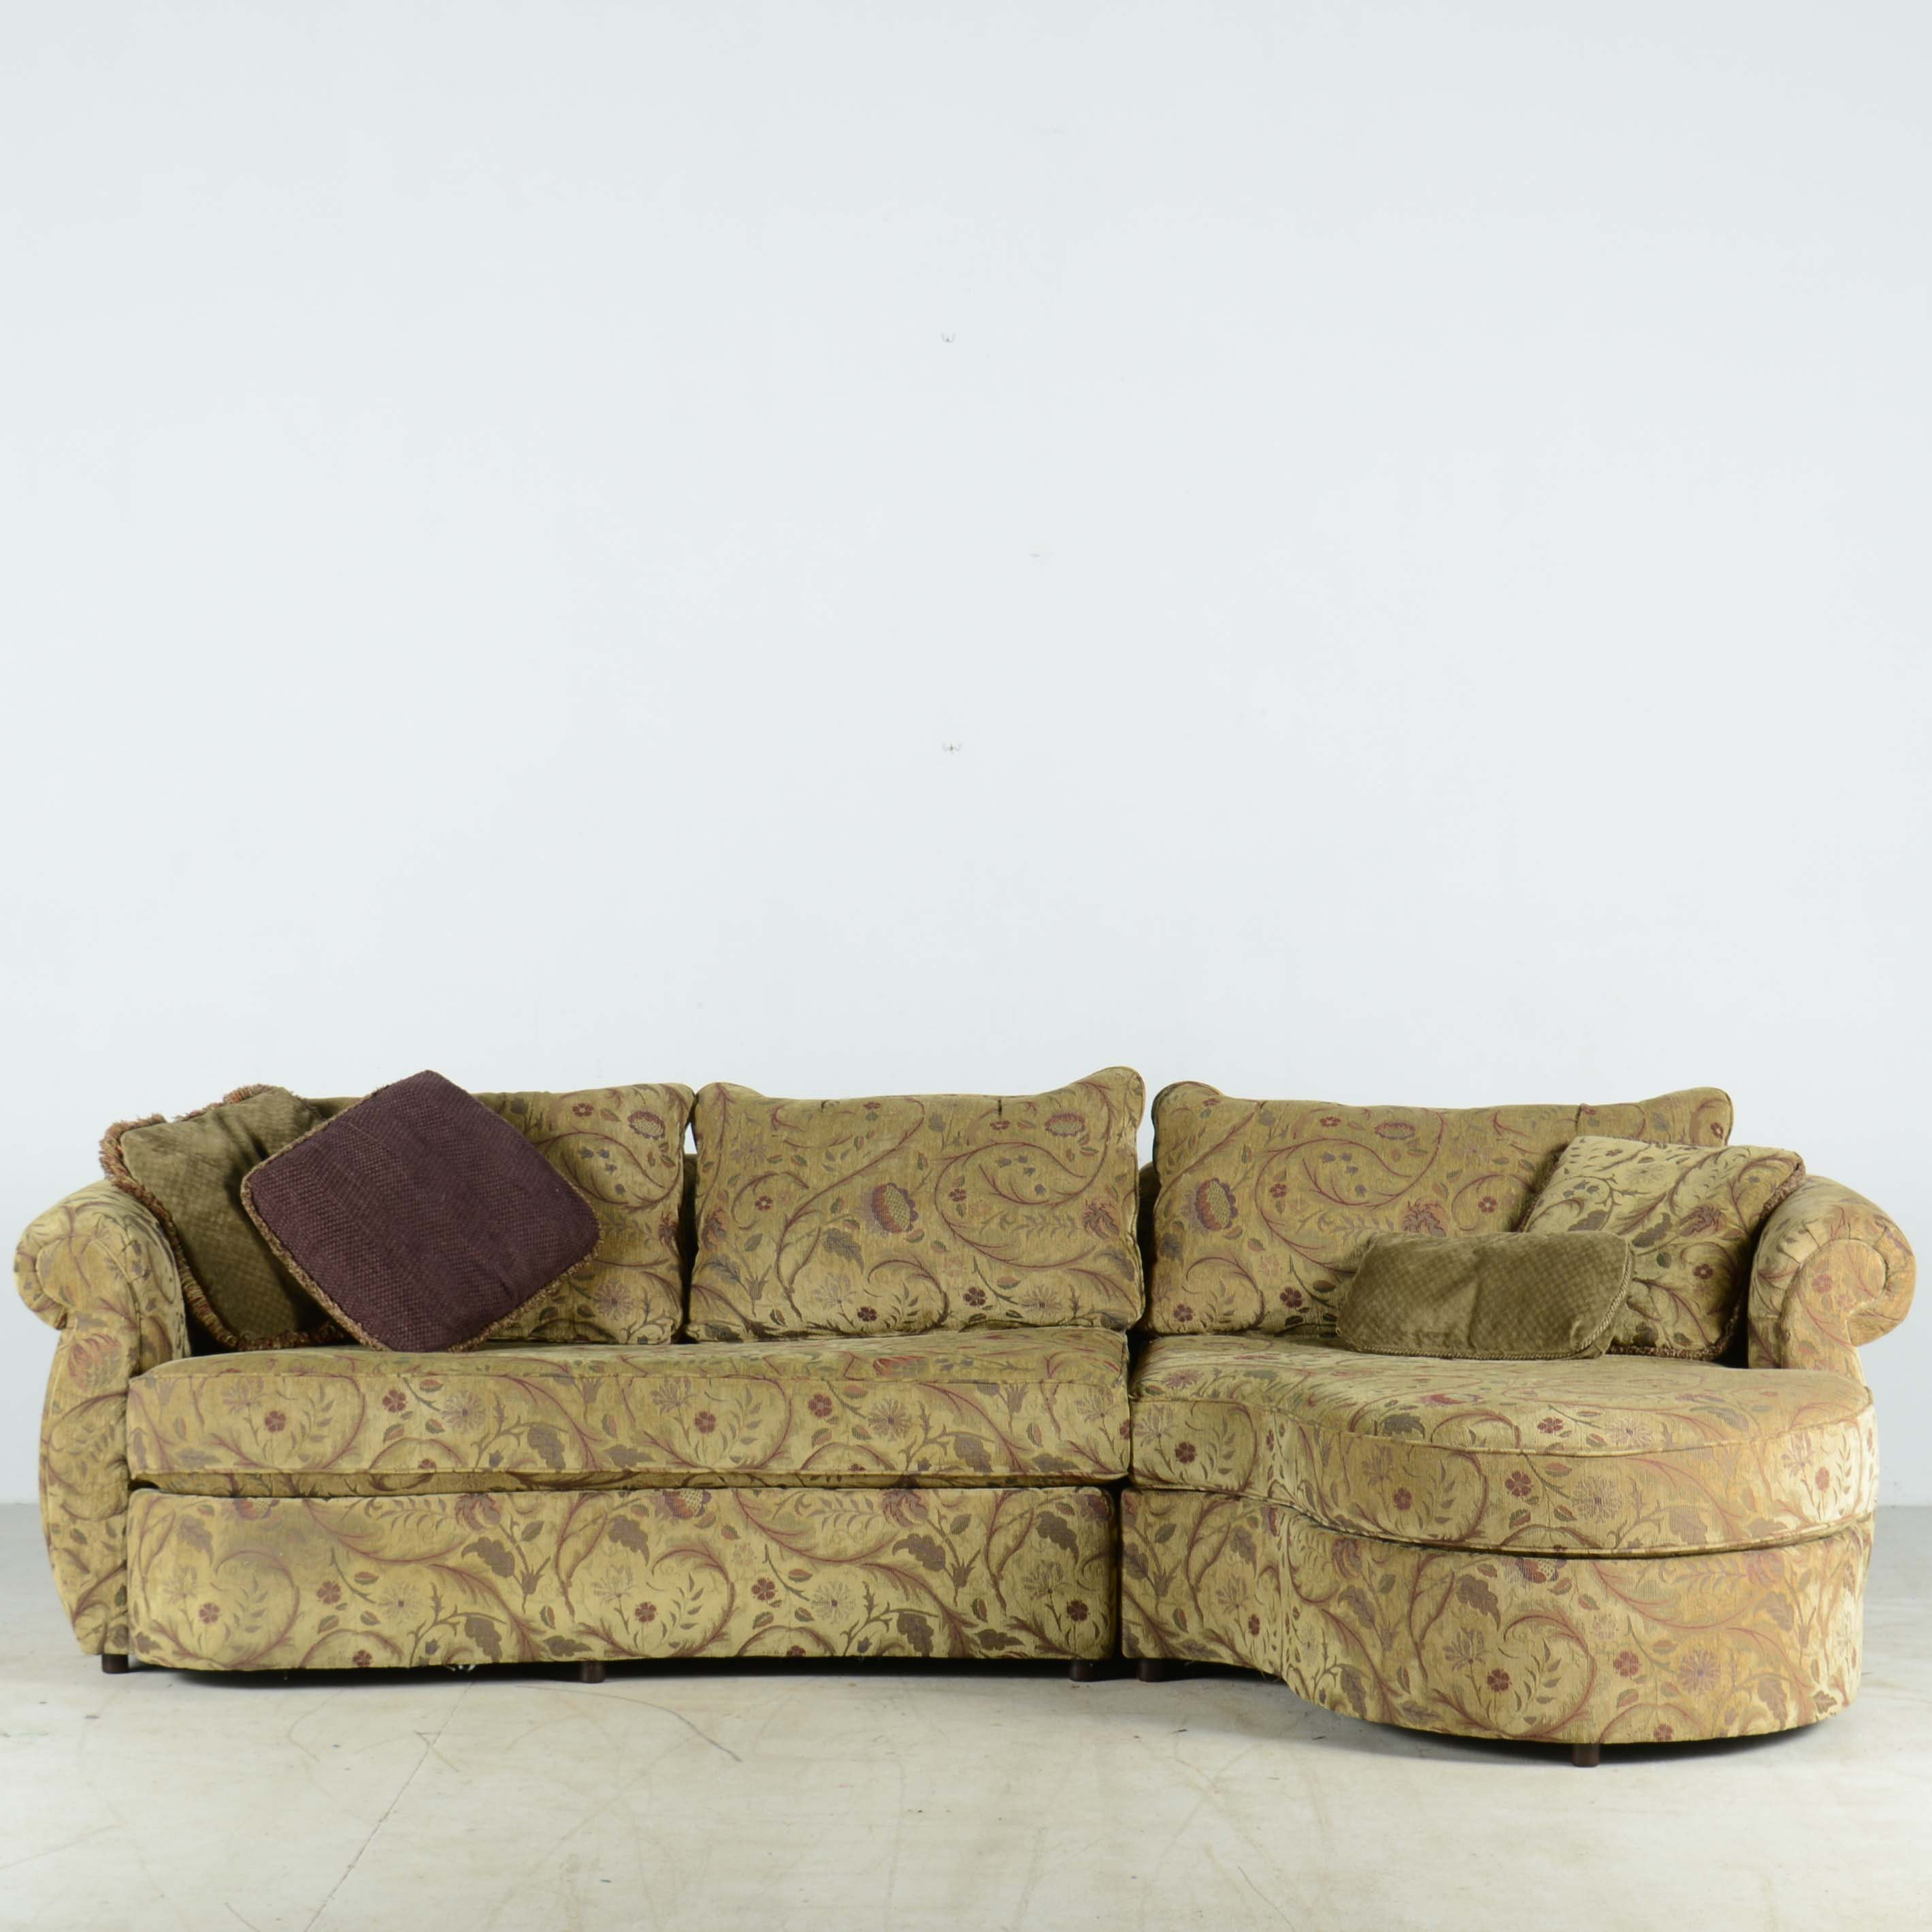 Upholstered Sectional with Built-In Chaise : settees and chaises - Sectionals, Sofas & Couches